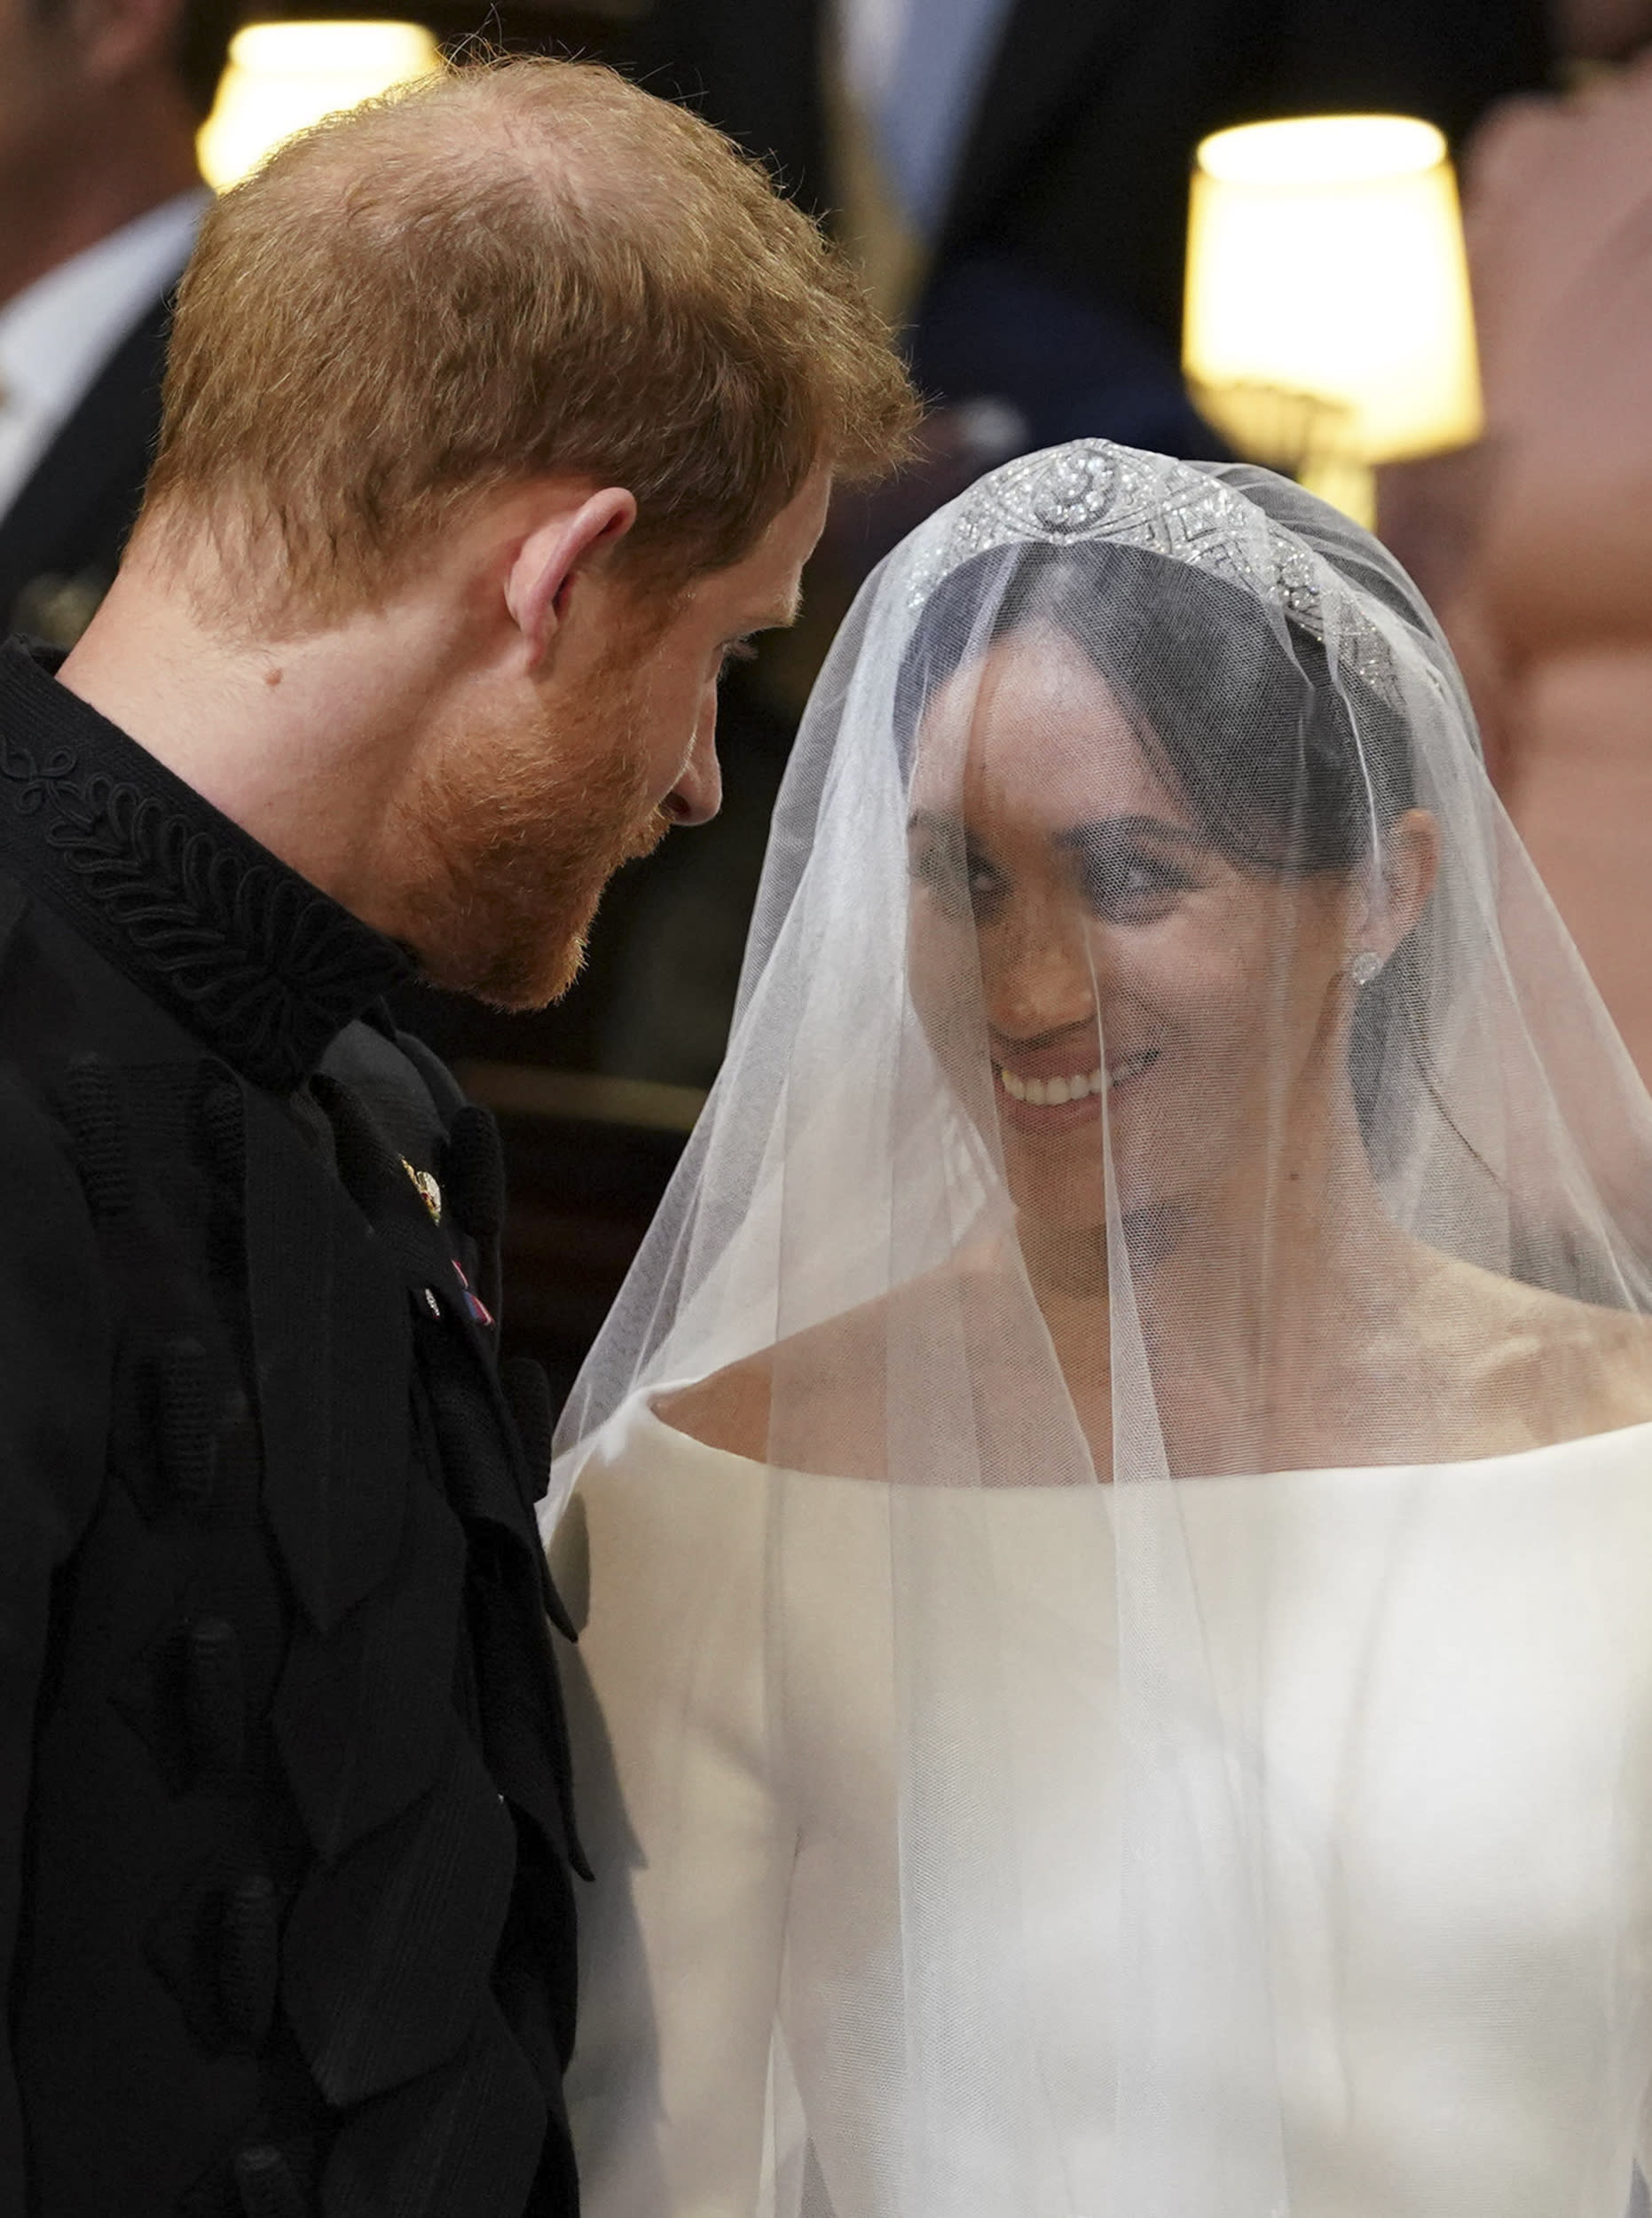 <p>Britain's Prince Harry, Duke of Sussex and Meghan Markle, Duchess of Sussex, stand together at the altar in St George's Chapel, Windsor Castle, in Windsor, on May 19, 2018 during their wedding ceremony.</p>  <p>(Photo by Dominic Lipinski / POOL / AFP)</p>